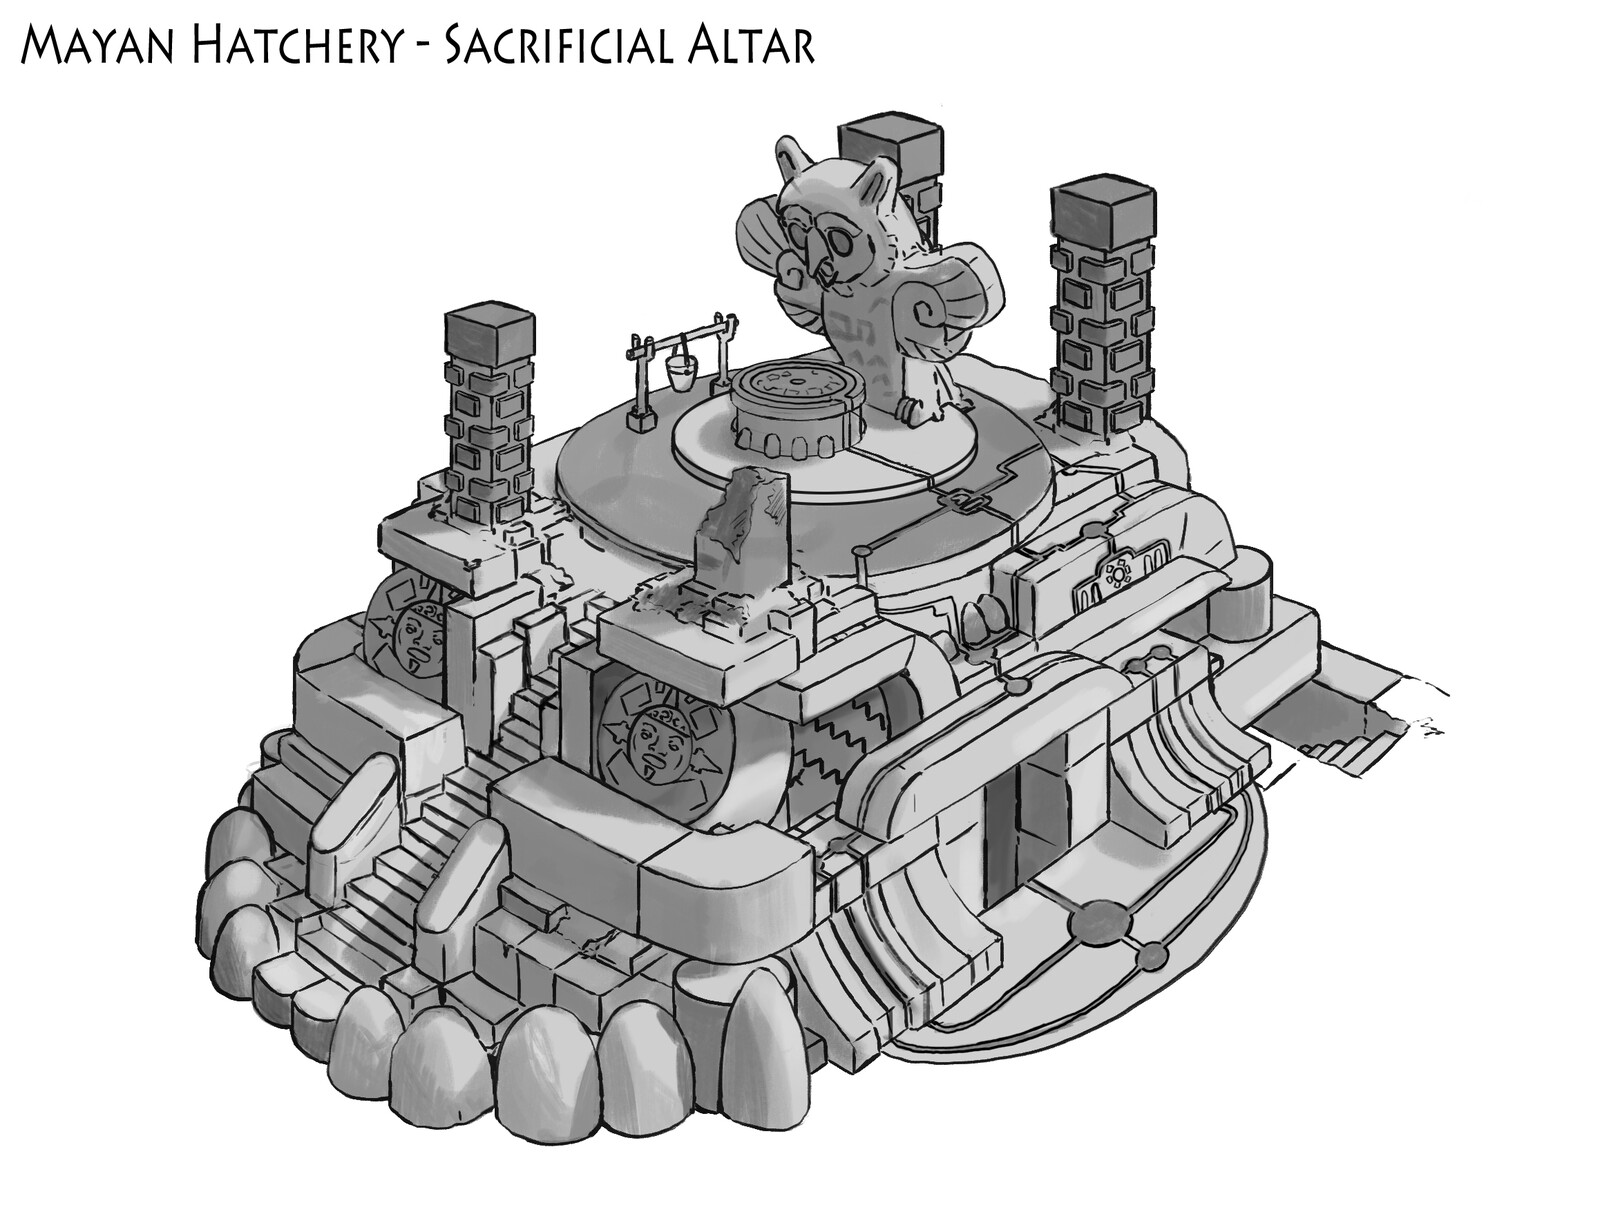 Mayan Sacrificial altar and demon hatchery